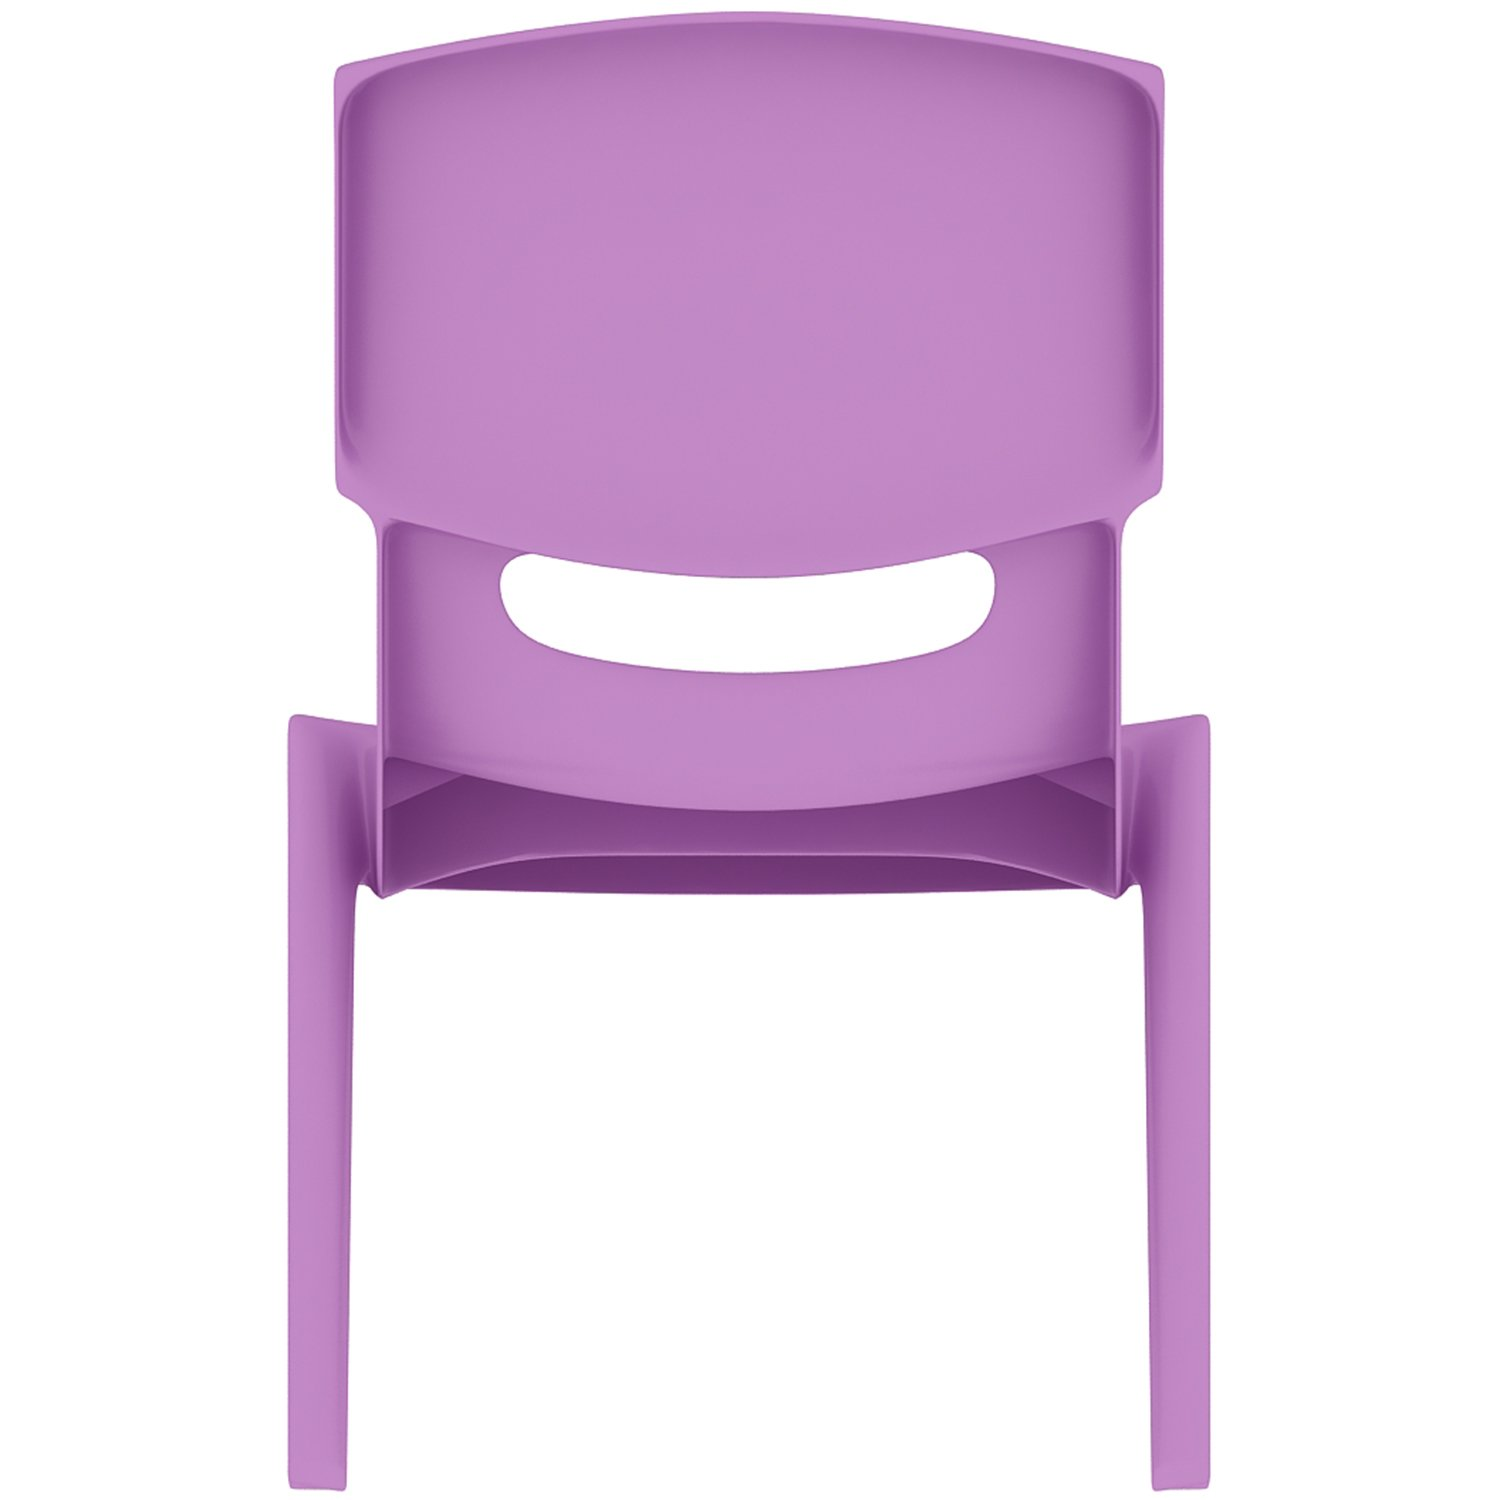 2xhome - Set of Four (4) - Purple - Kids Size Plastic Side Chair 10'' Seat Height Purple Childs Chair Childrens Room School Chairs No Arm Arms Armless Molded Plastic Seat Stackable by 2xhome (Image #5)